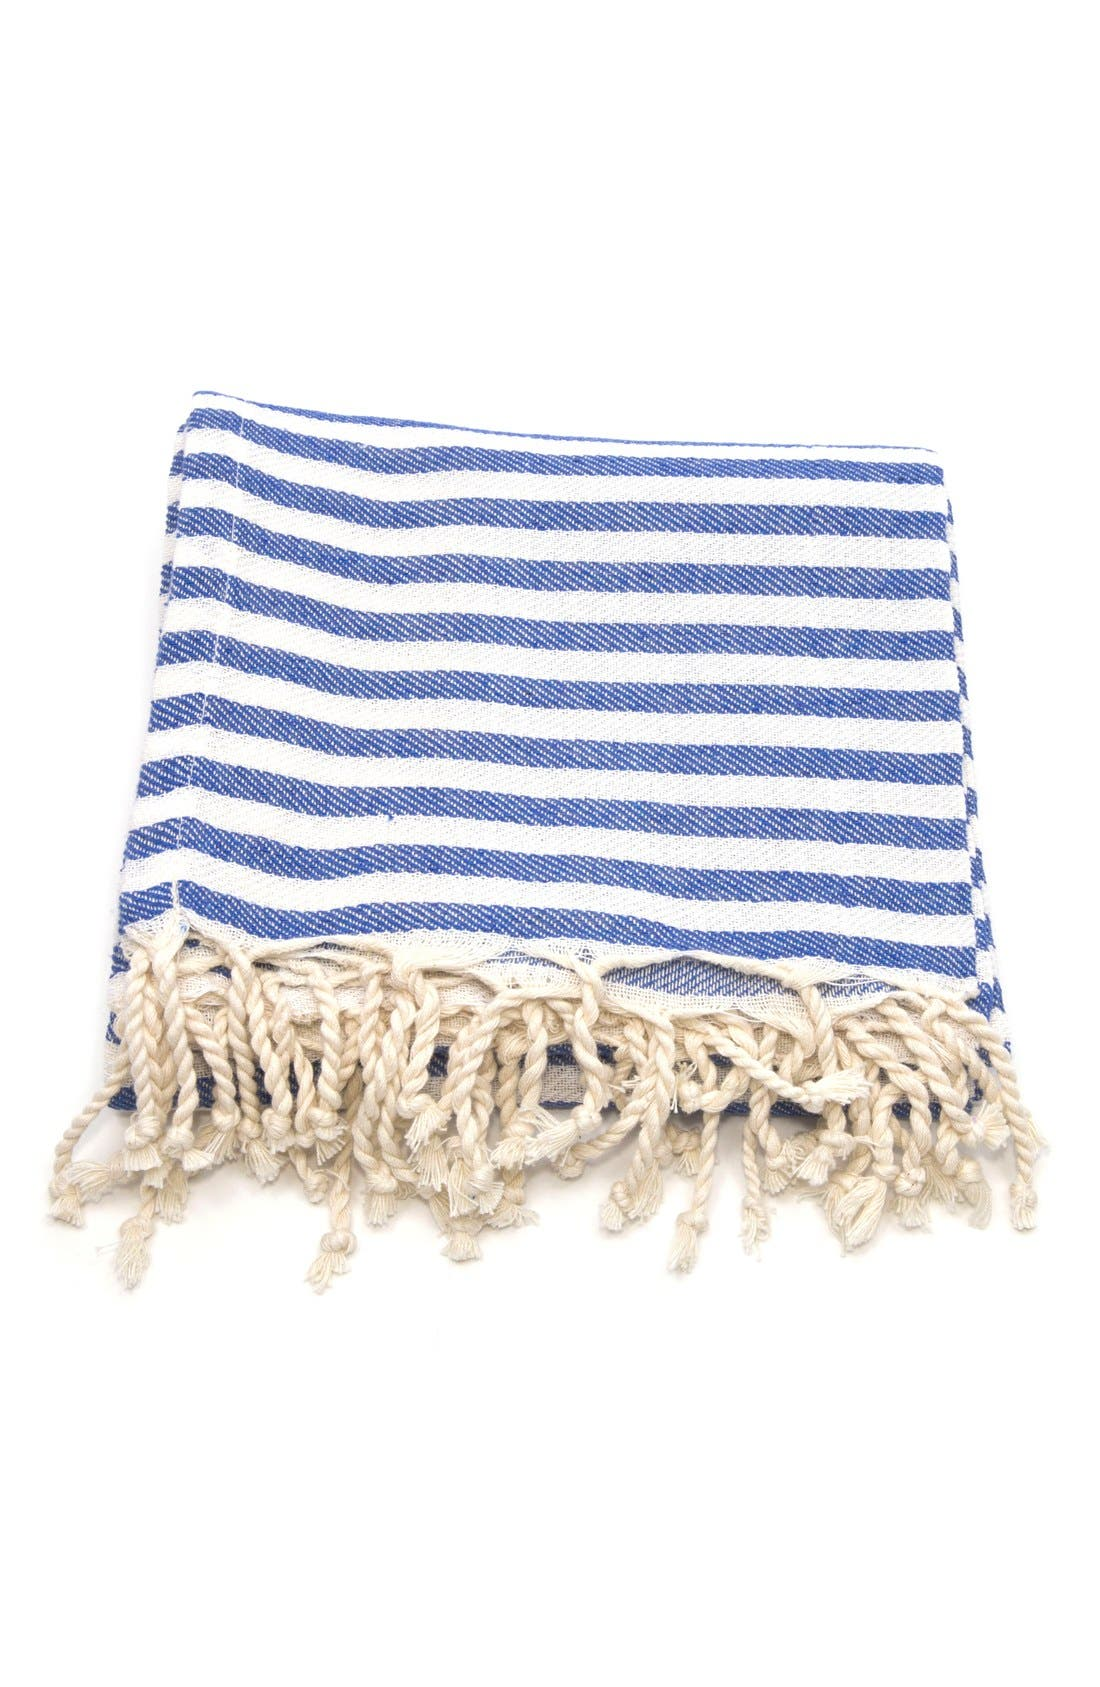 LINUM HOME TEXTILES,                             'Fun in the Sun' Turkish Pestemal Towel,                             Alternate thumbnail 2, color,                             OCEAN BLUE